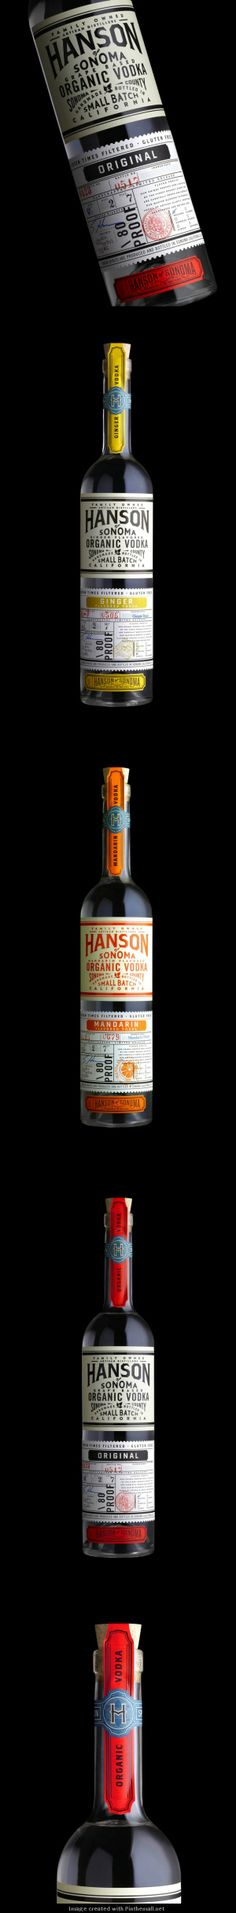 Hanson of Sonoma organic vodka designed by Stranger & Stranger